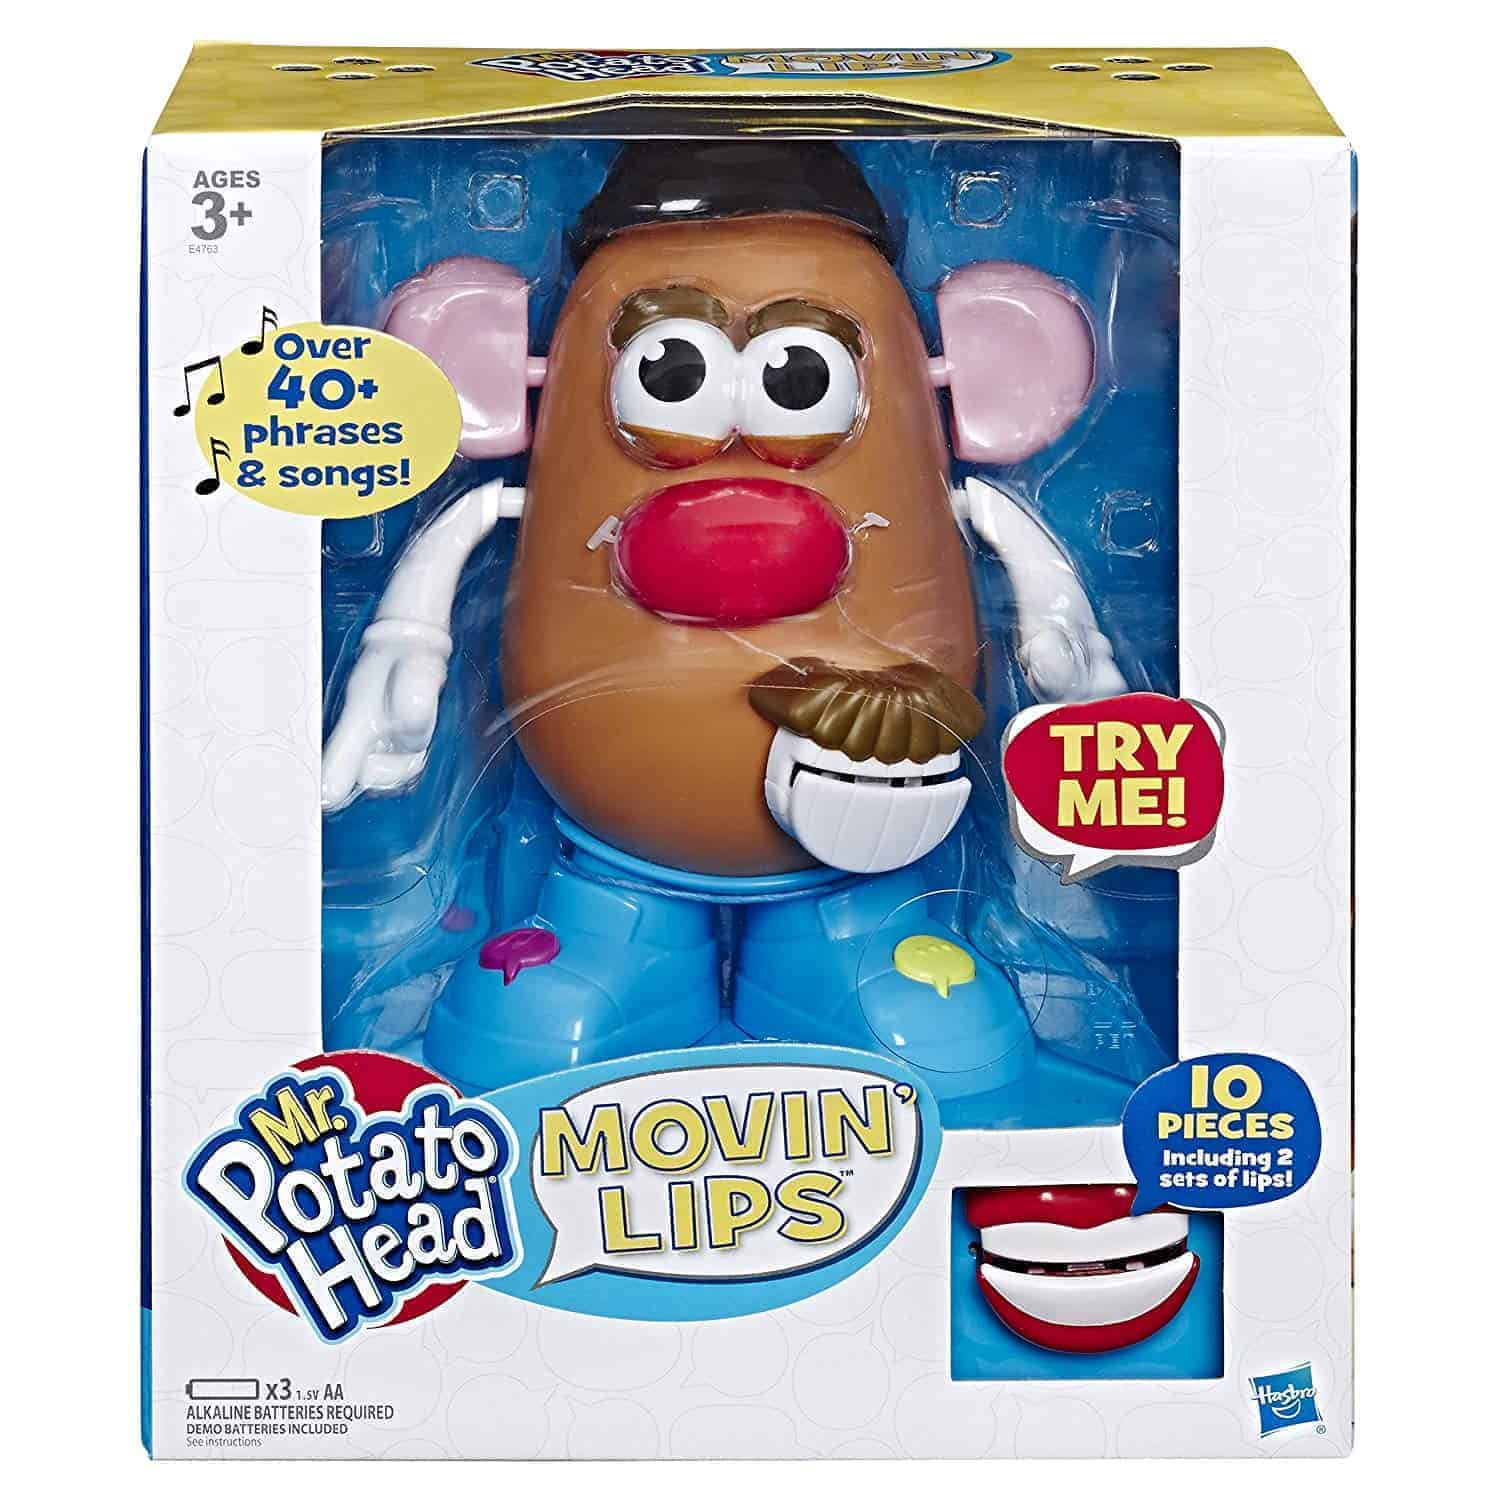 new mr potato head gift idea | kimschob.com